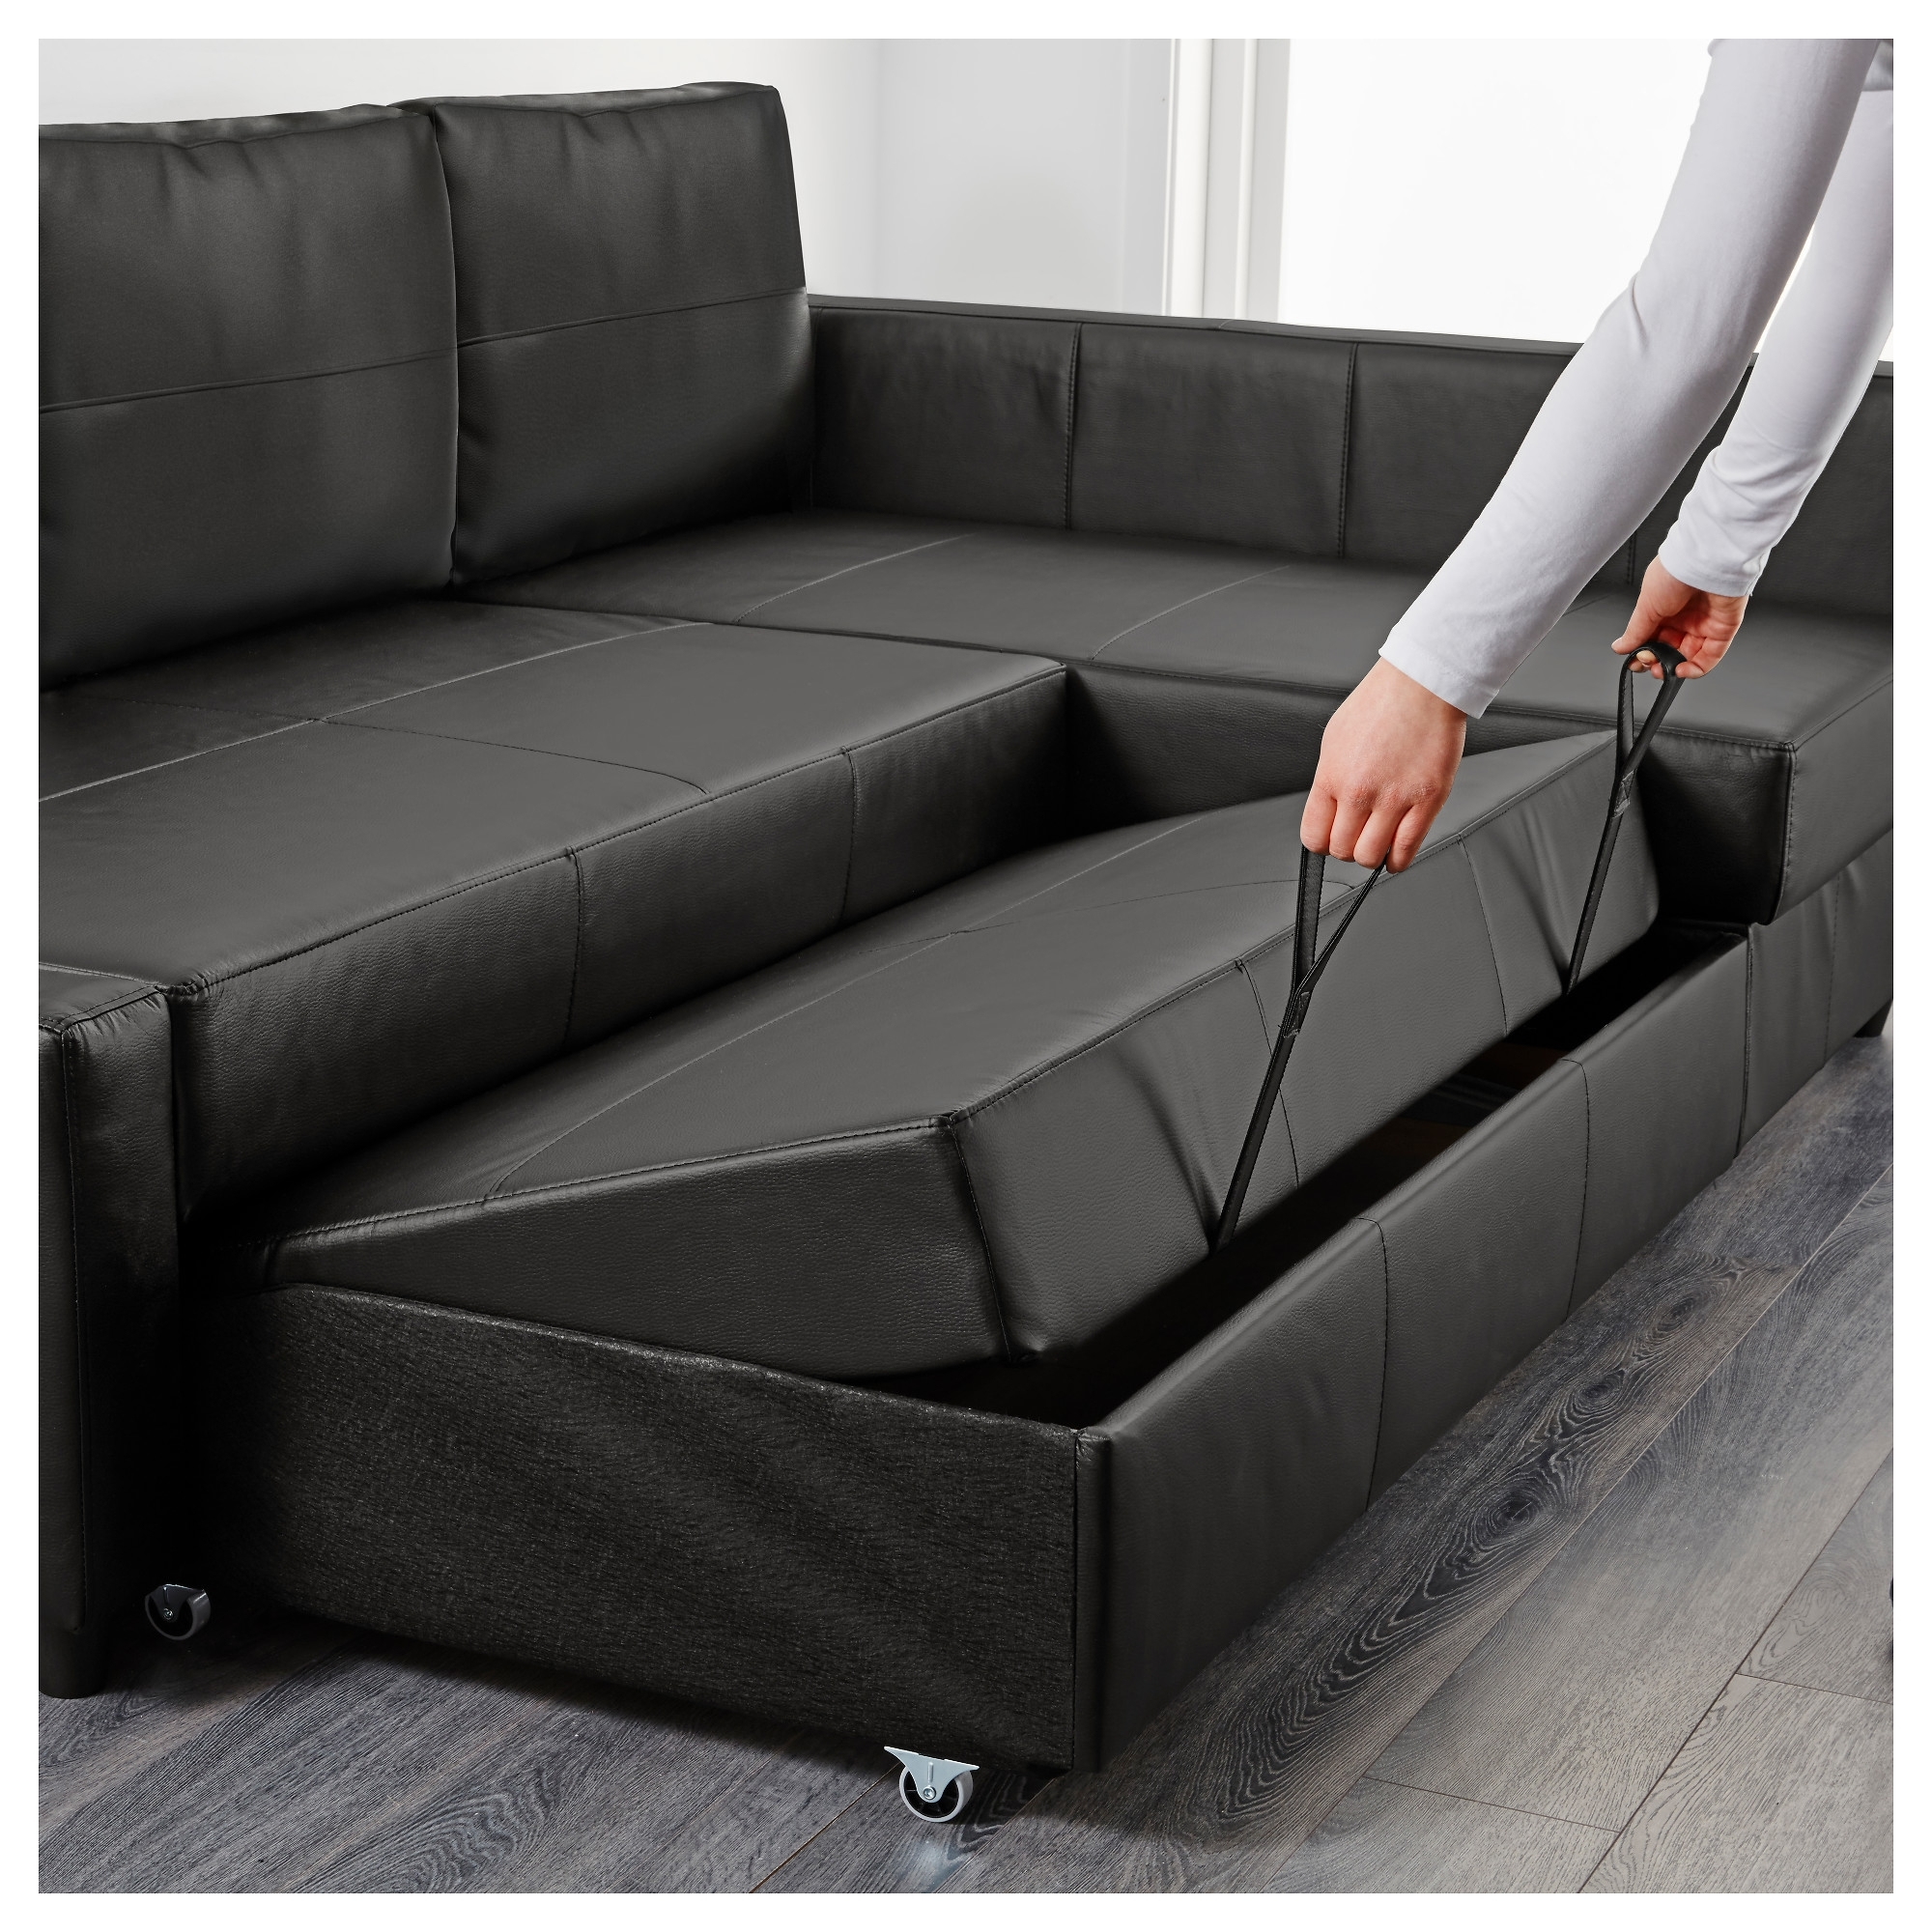 Widely Used Friheten Corner Sofa Bed With Storage Bomstad Black – Ikea Throughout Ikea Corner Sofas With Storage (View 4 of 20)